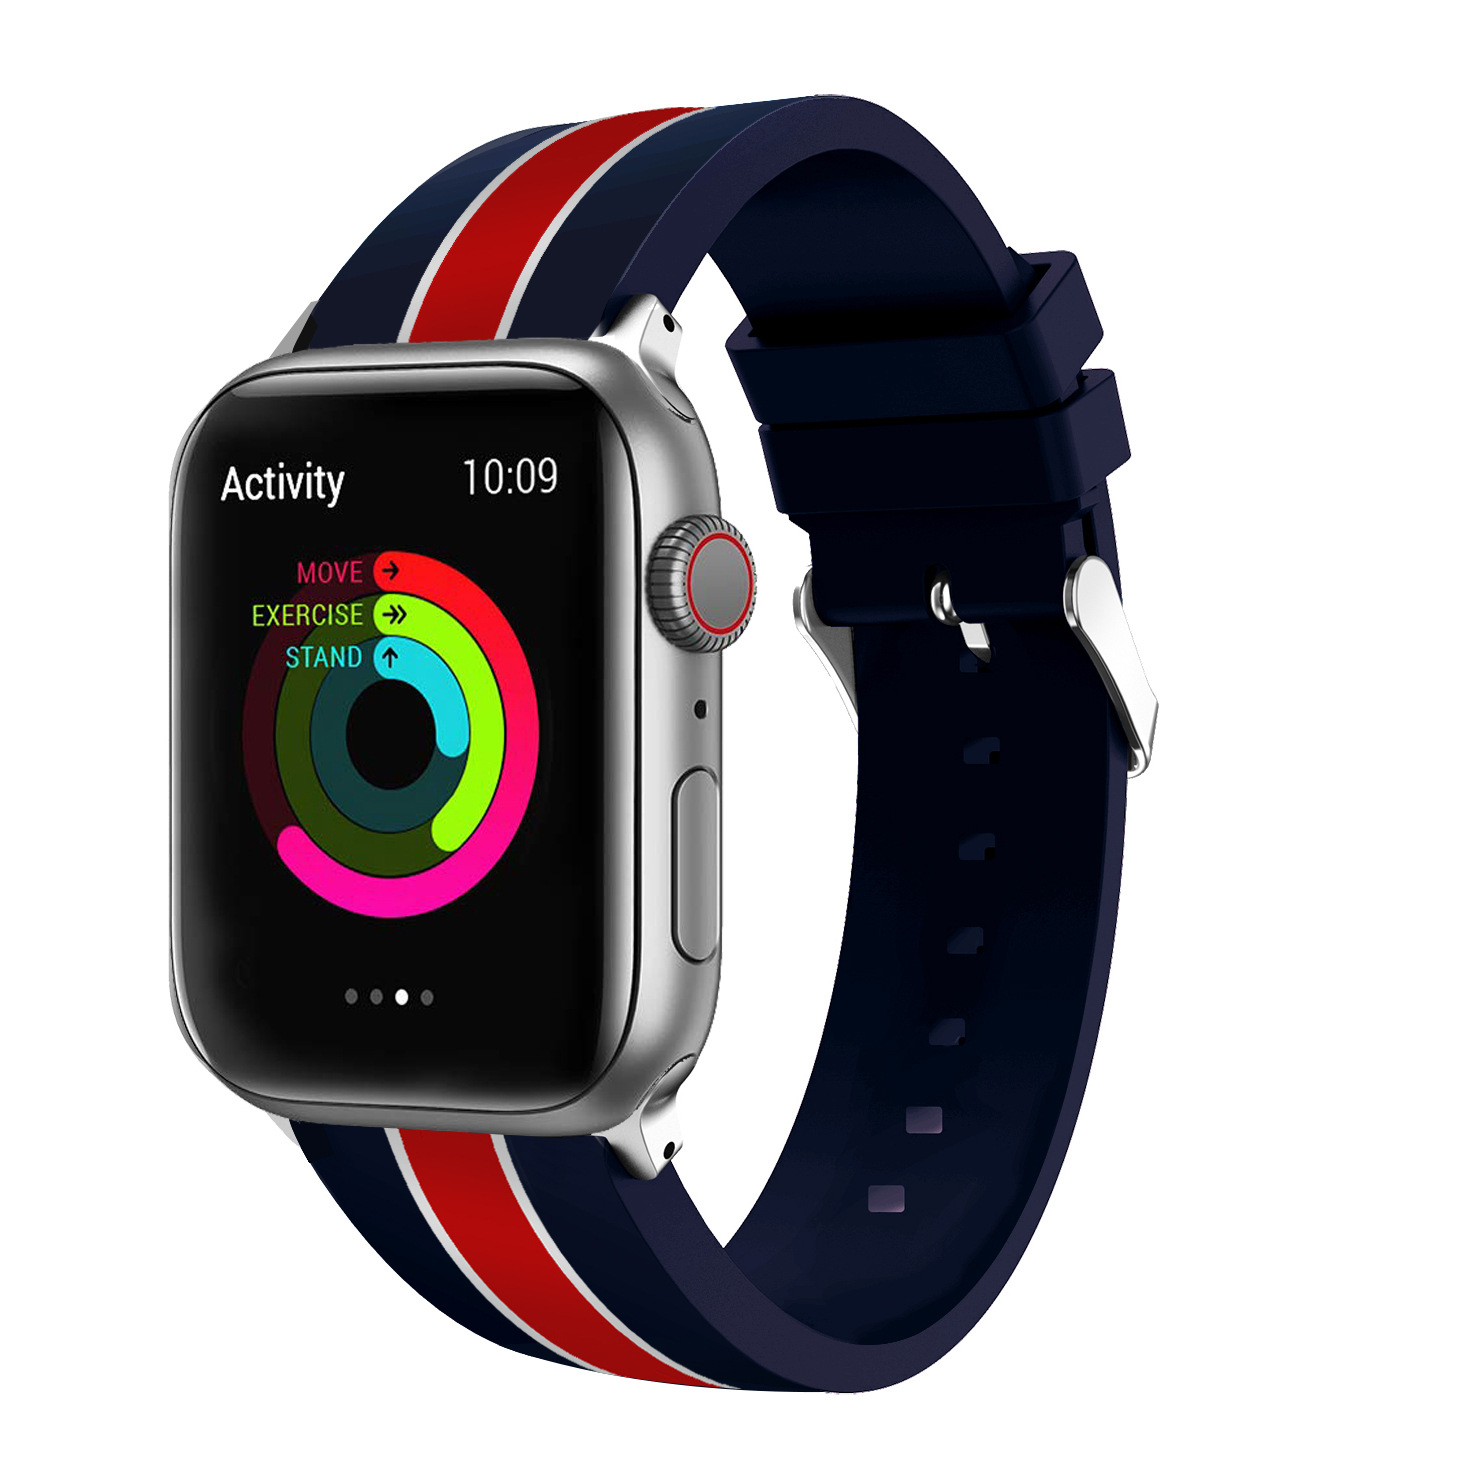 Suitable For Apple Watch Colour Printing Silicone Watch Strap AppleWatch Printed Silicone Wrist Strap IWatch New Style